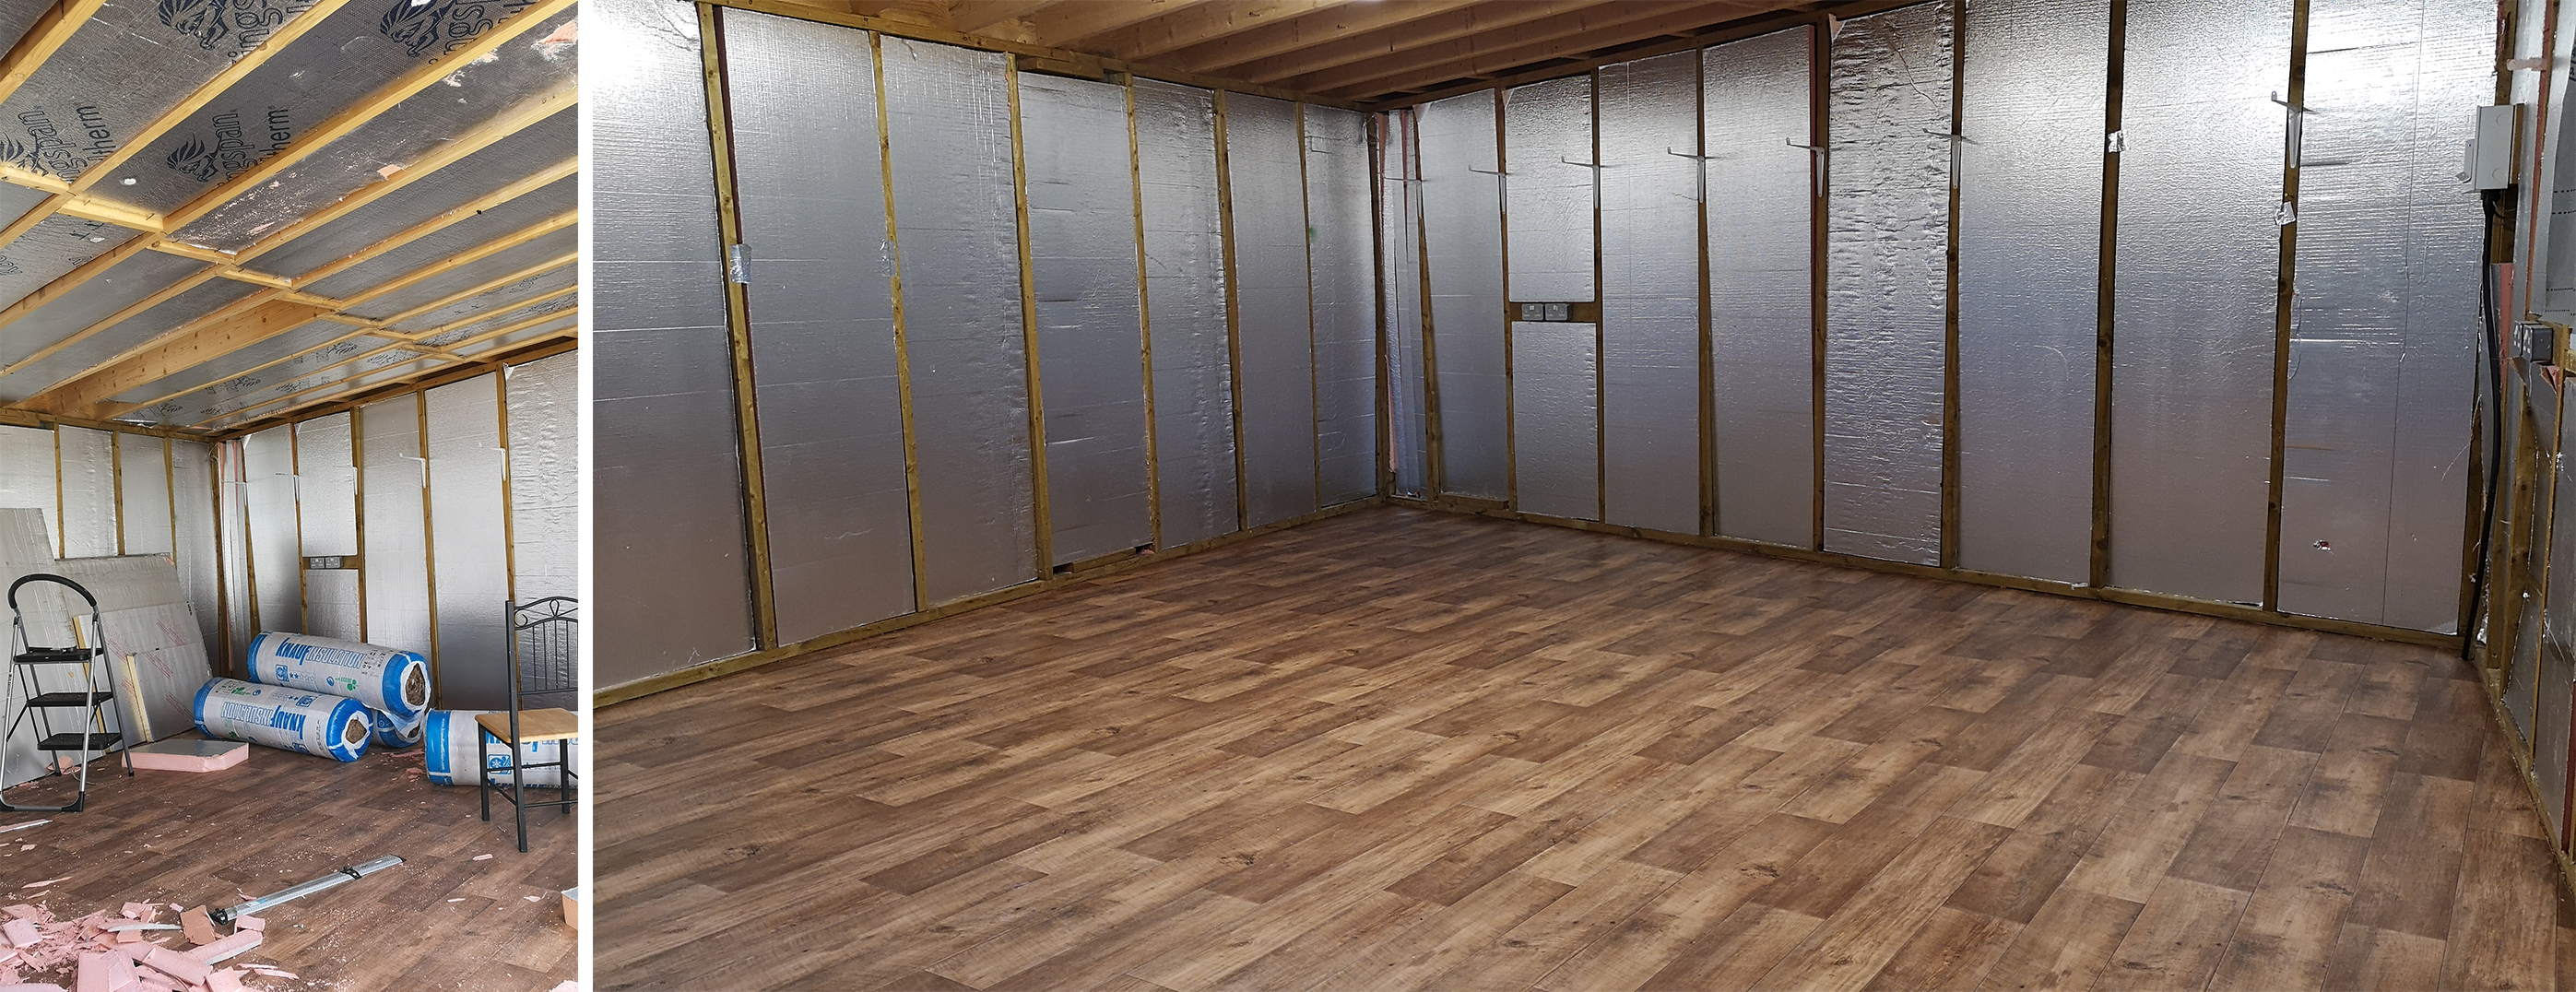 photos of my workshop with insulation between the beams, and the wood effect vinyl floor installed.